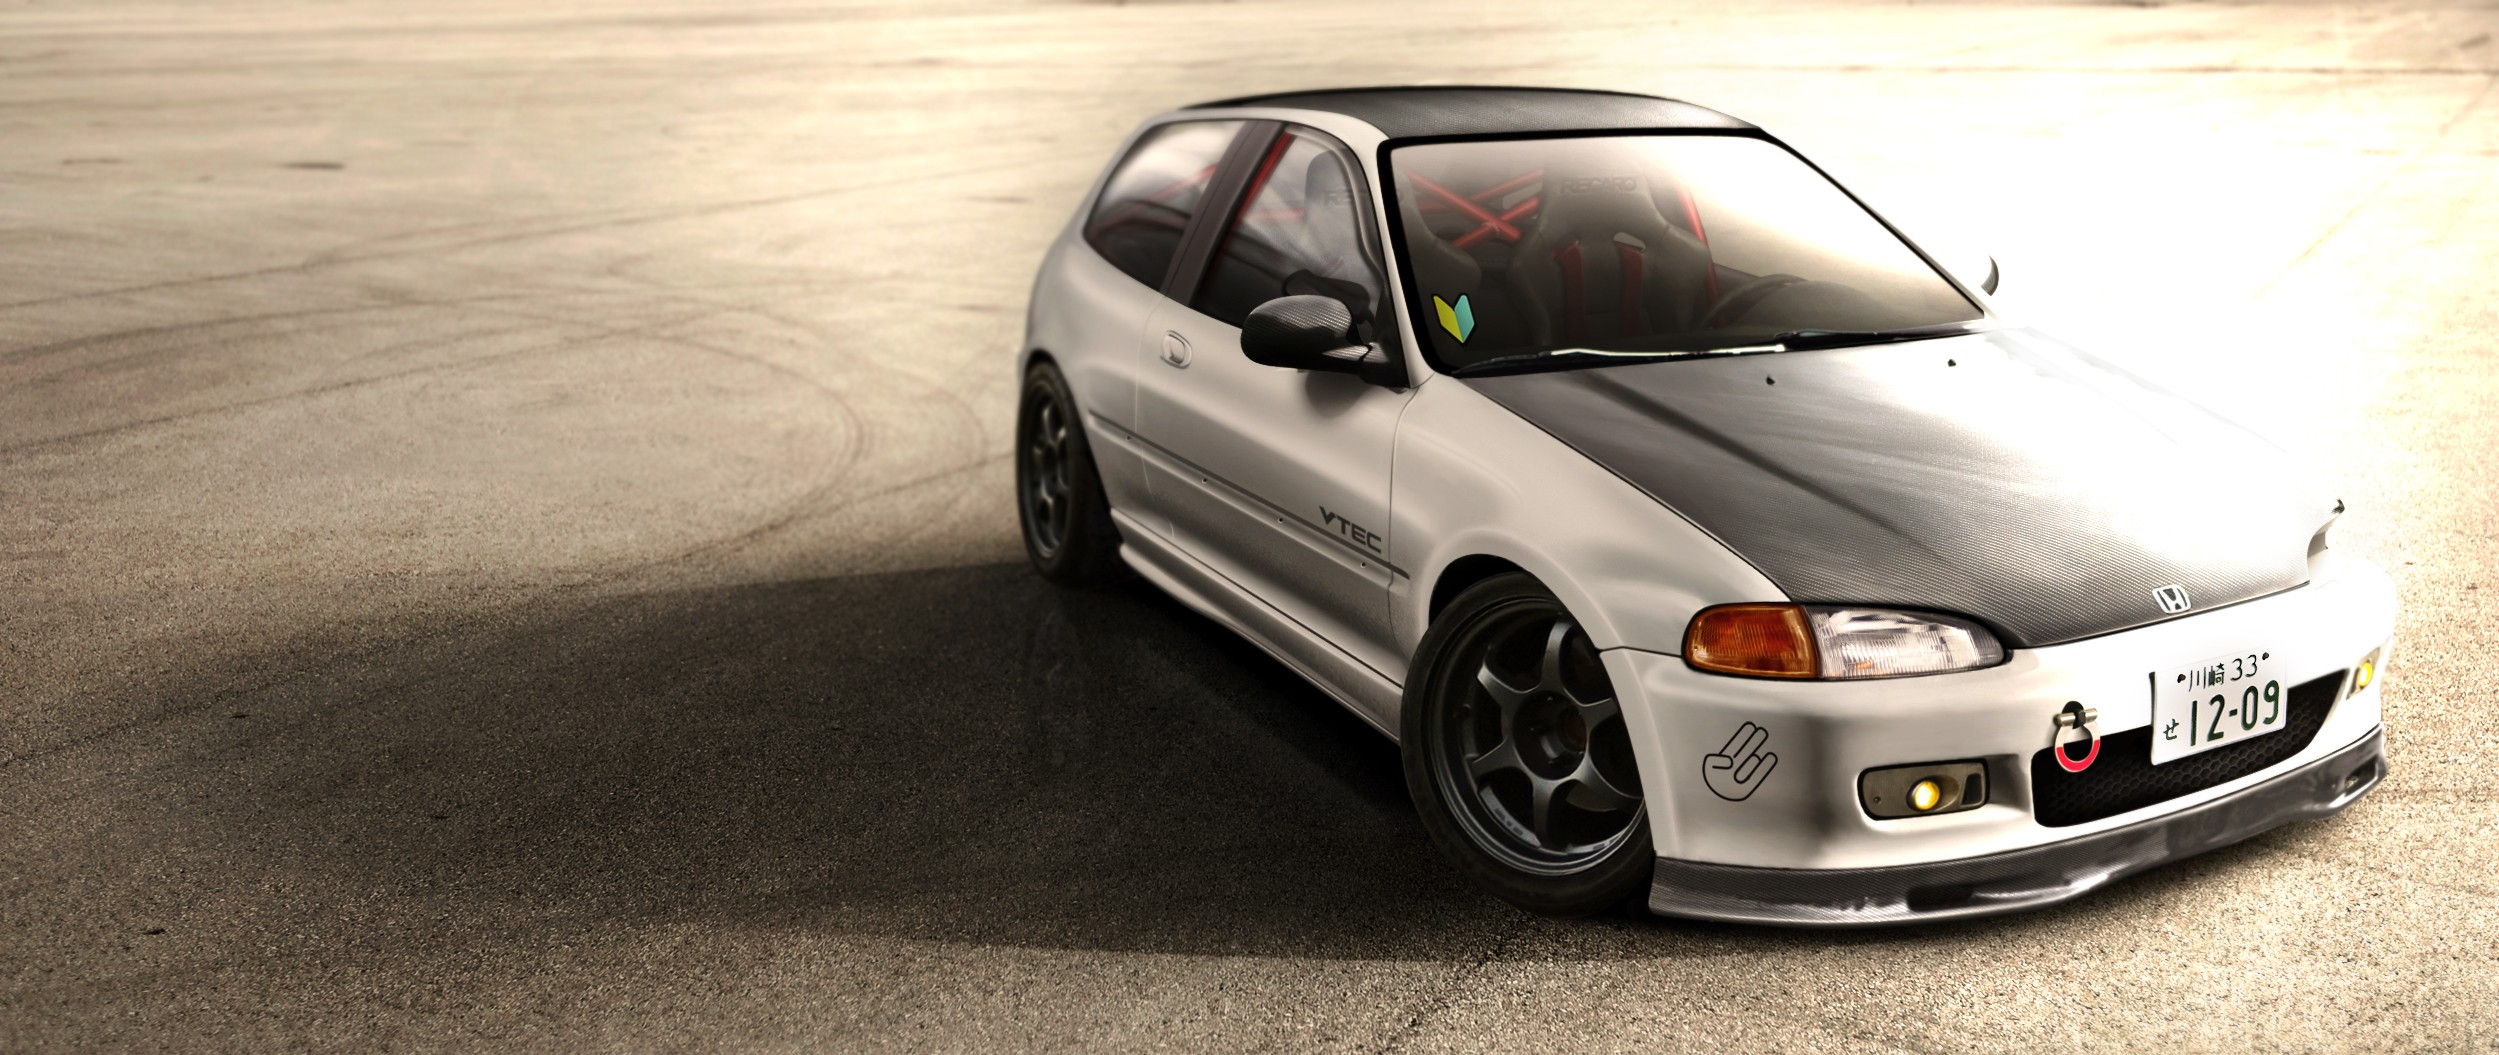 Image for Honda Civic JDM Wallpaper Images | Cars & Coffee